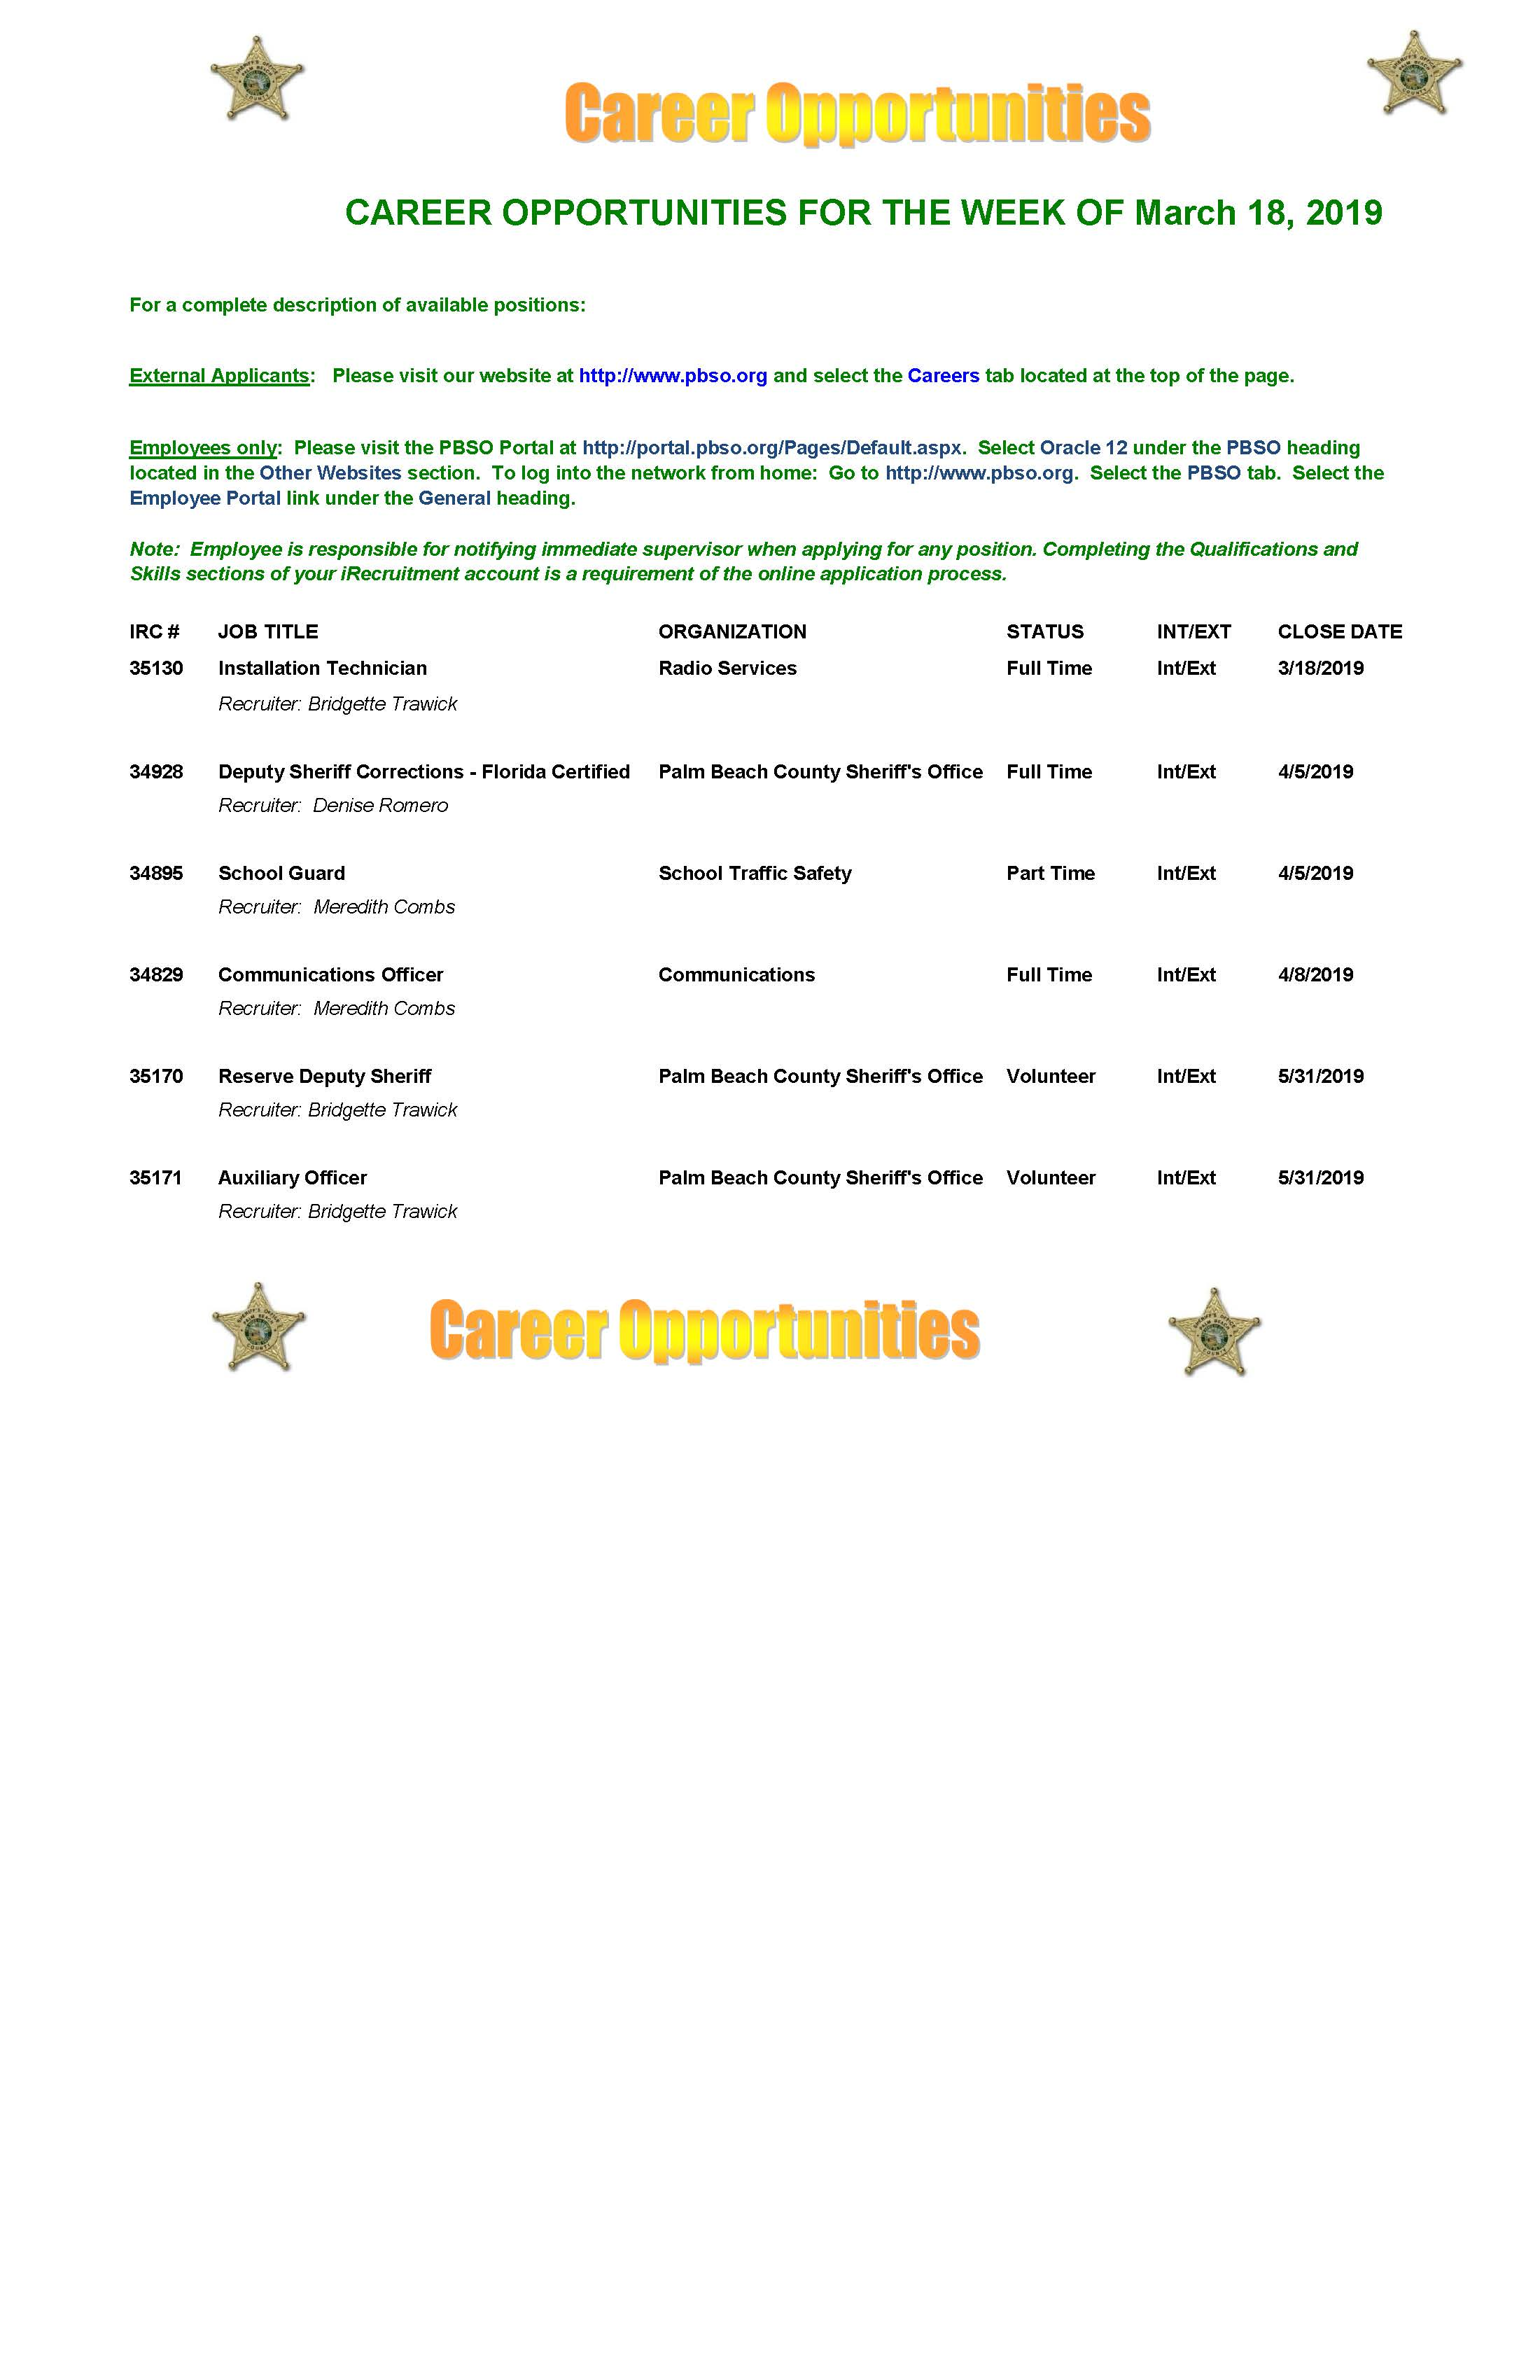 Career Opportunities for week of 3-18-2019